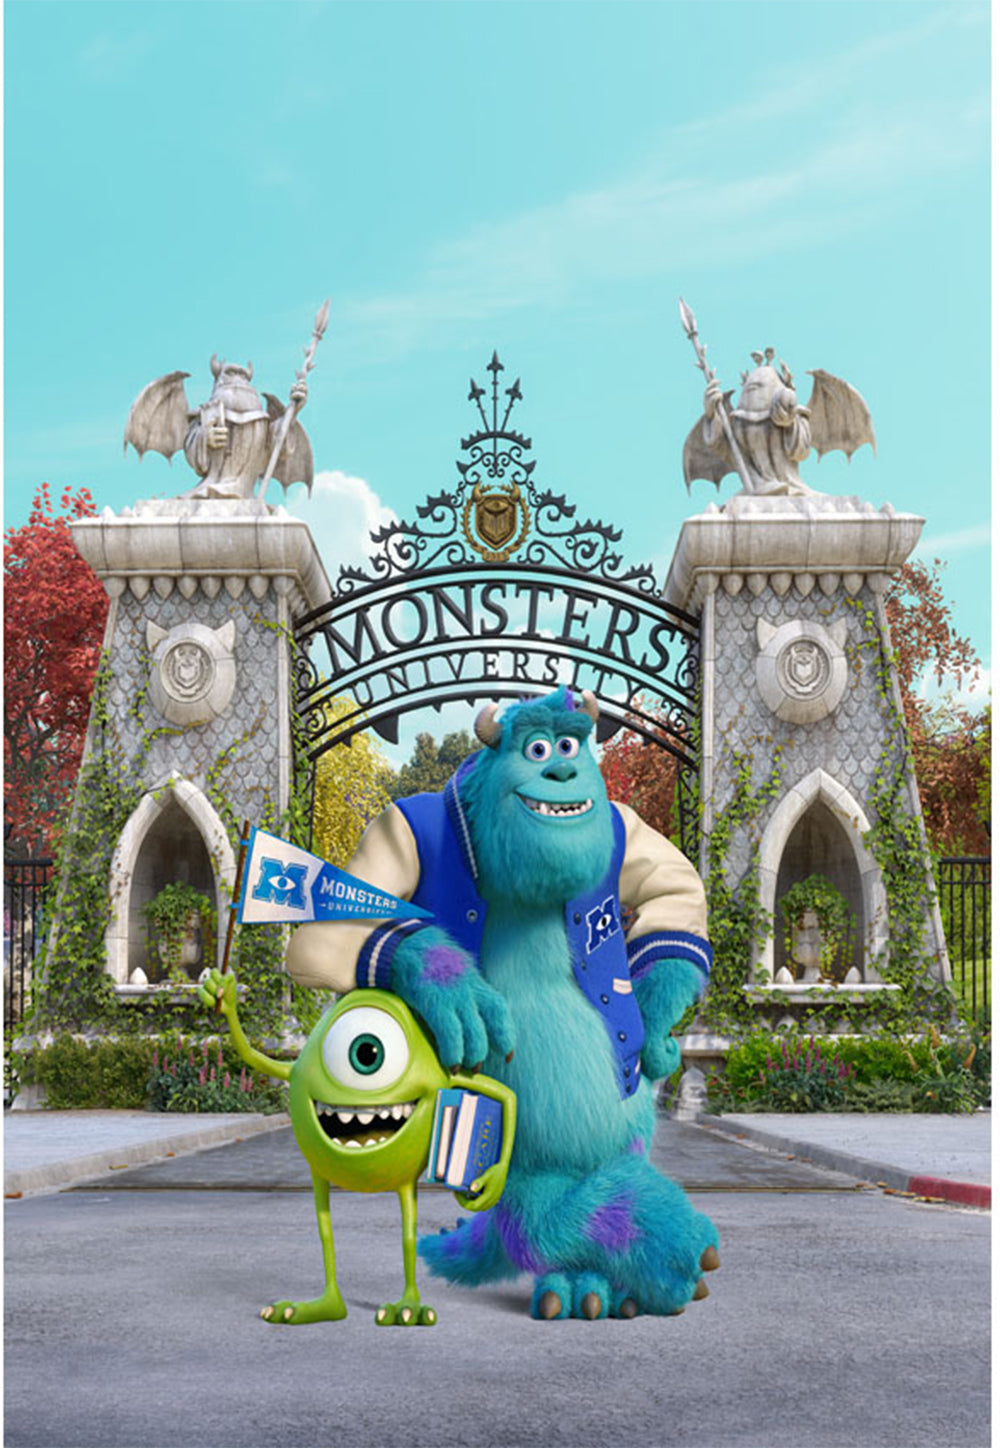 Photo Background Photography Backdrops Monsters Backdrops Monsters Backdrop For Pictures Movie Theme Photo Booth Props Disney Movie Photo Backdrop Monsters Photo Booth Props Monsters Dreamybackdrop